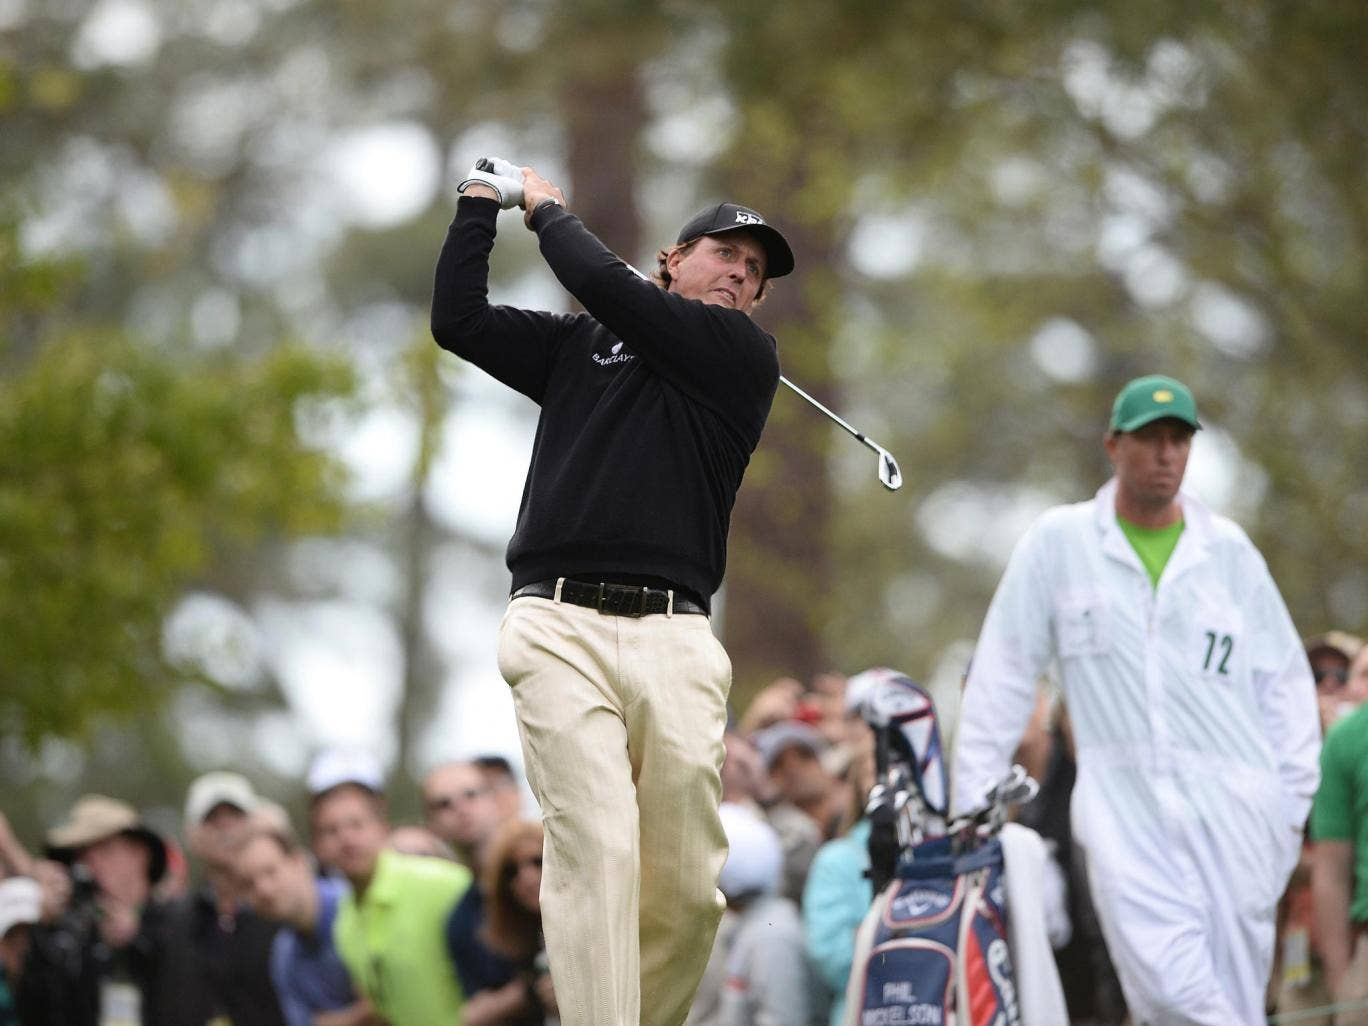 Phil Mickelson practices at Augusta National ahead of the 2014 Masters